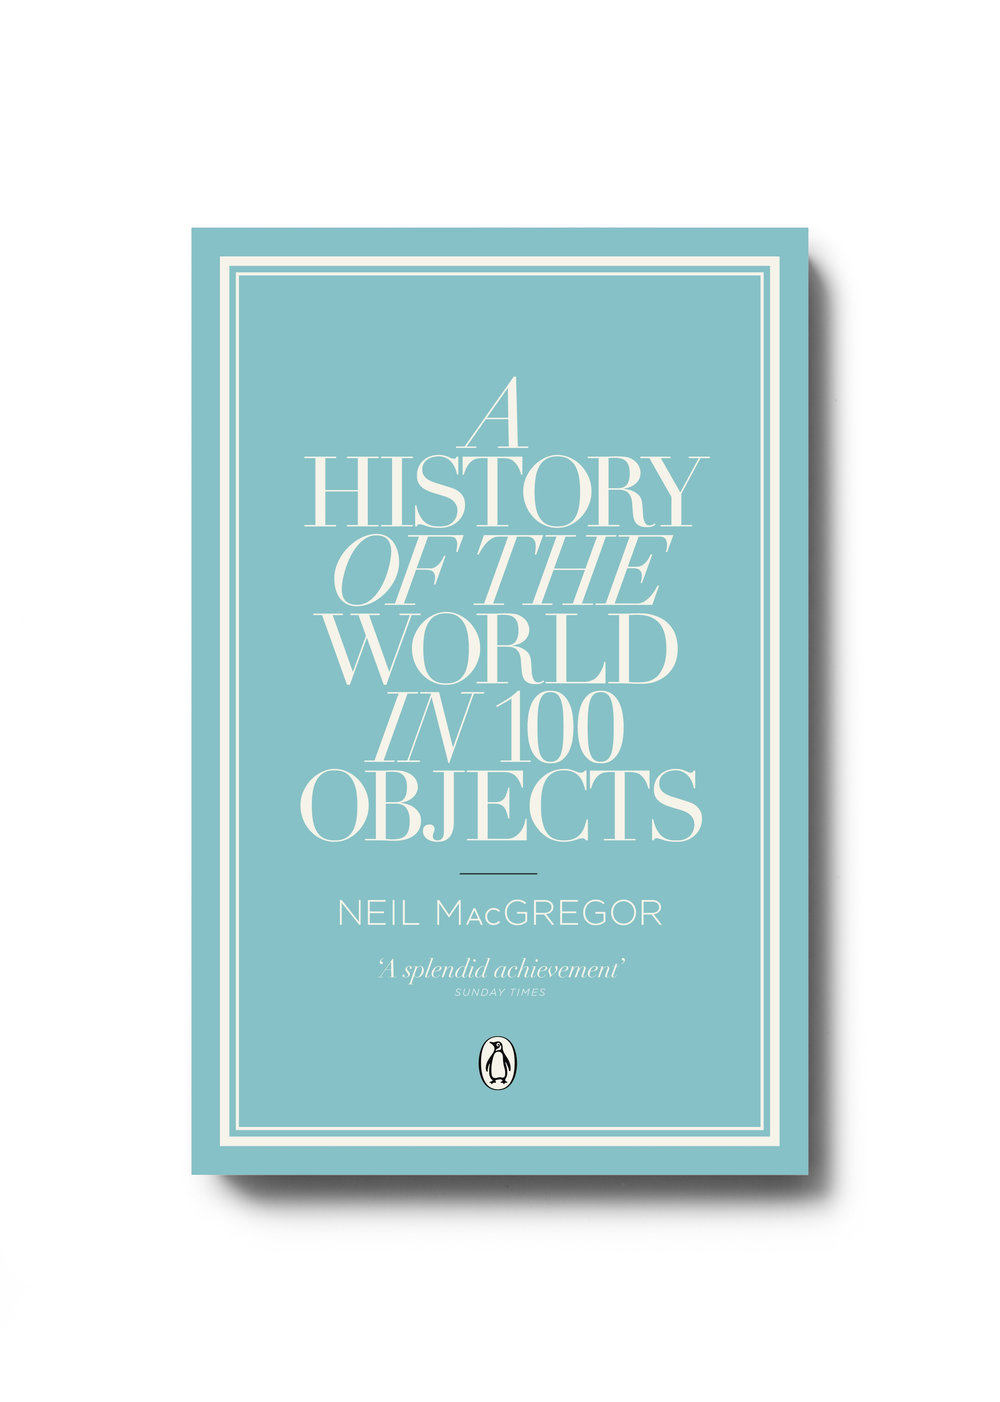 A History of the World in 100 Objects by Neil MacGregor (paperback) - Design: Jim Stoddart